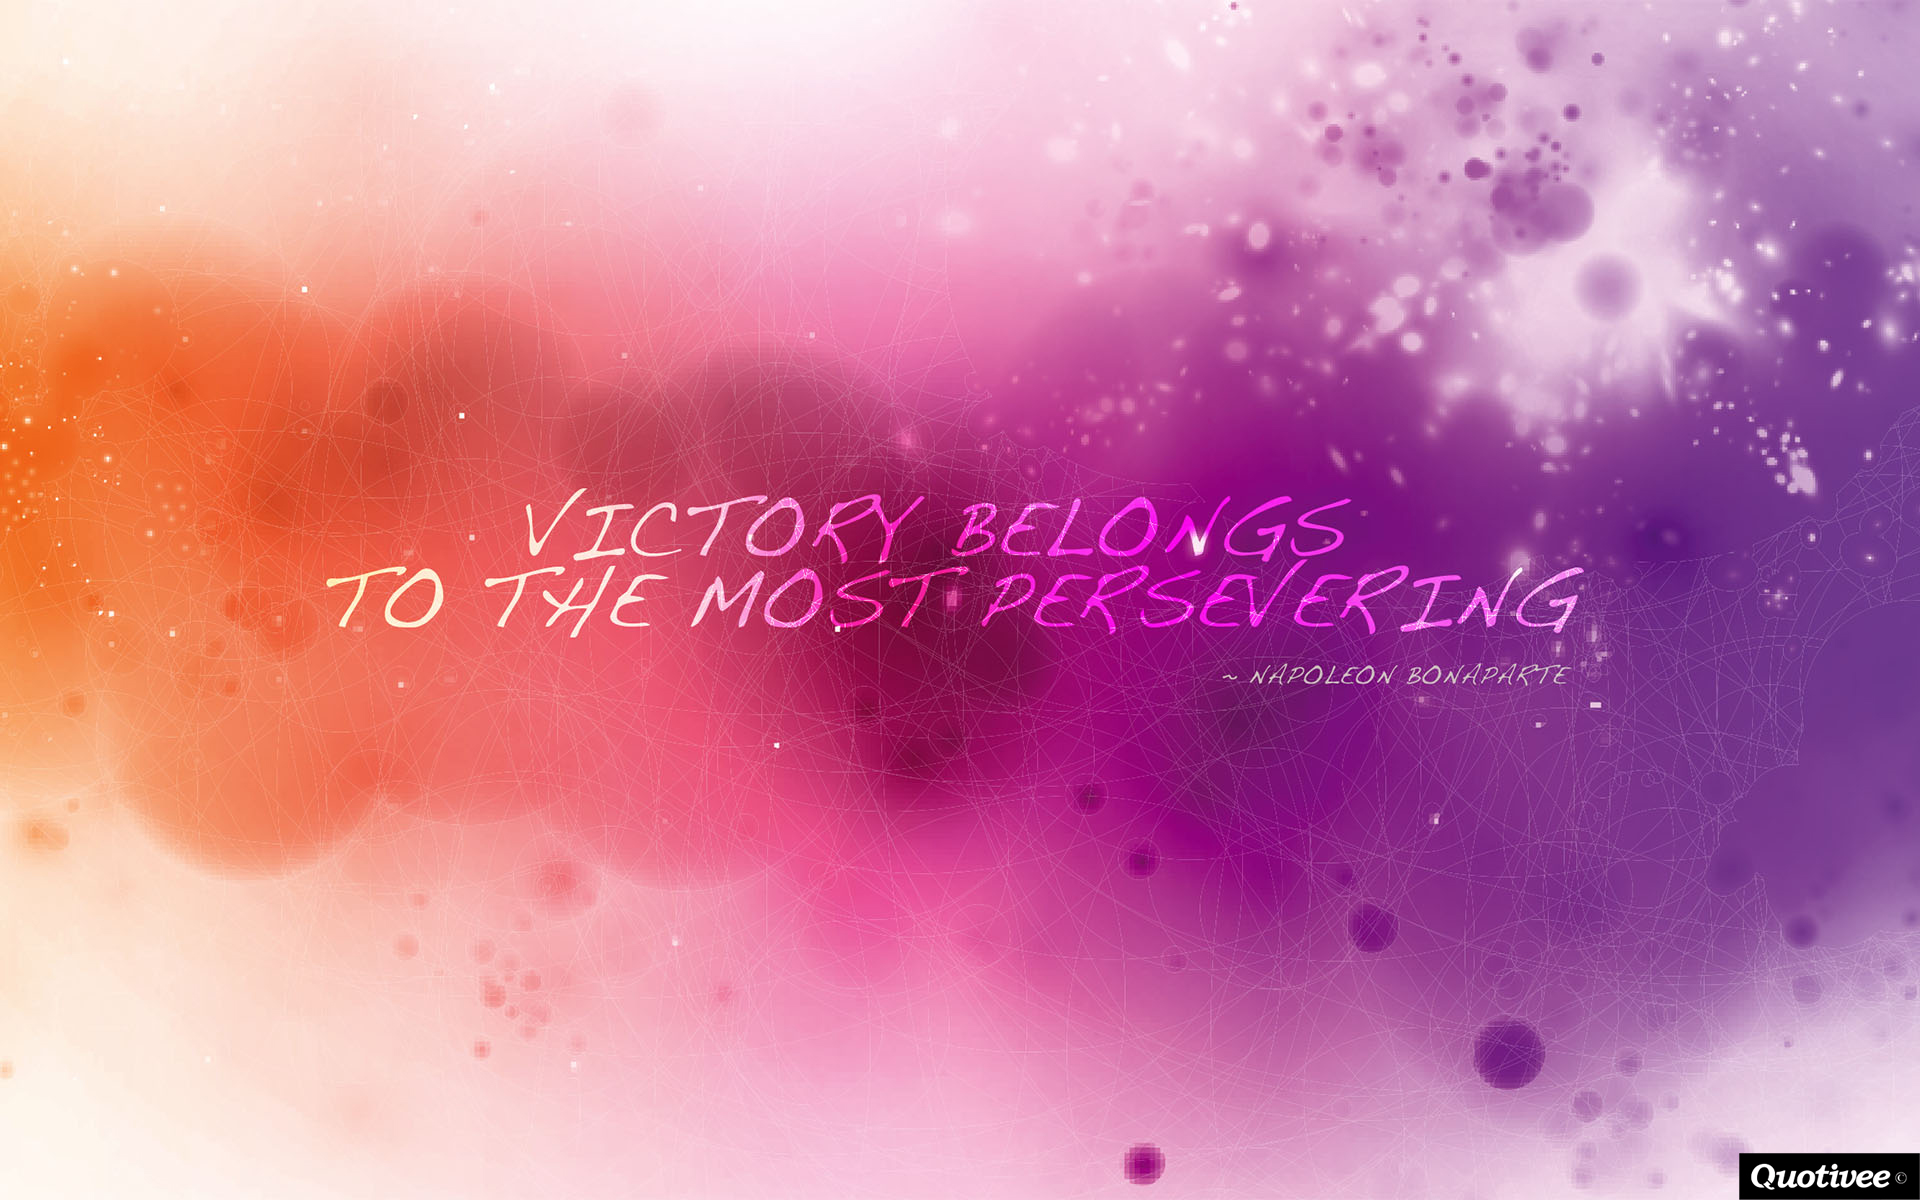 Motivational Quotes Wallpaper For Mobile Victory Belongs To The Most Persevering Inspirational